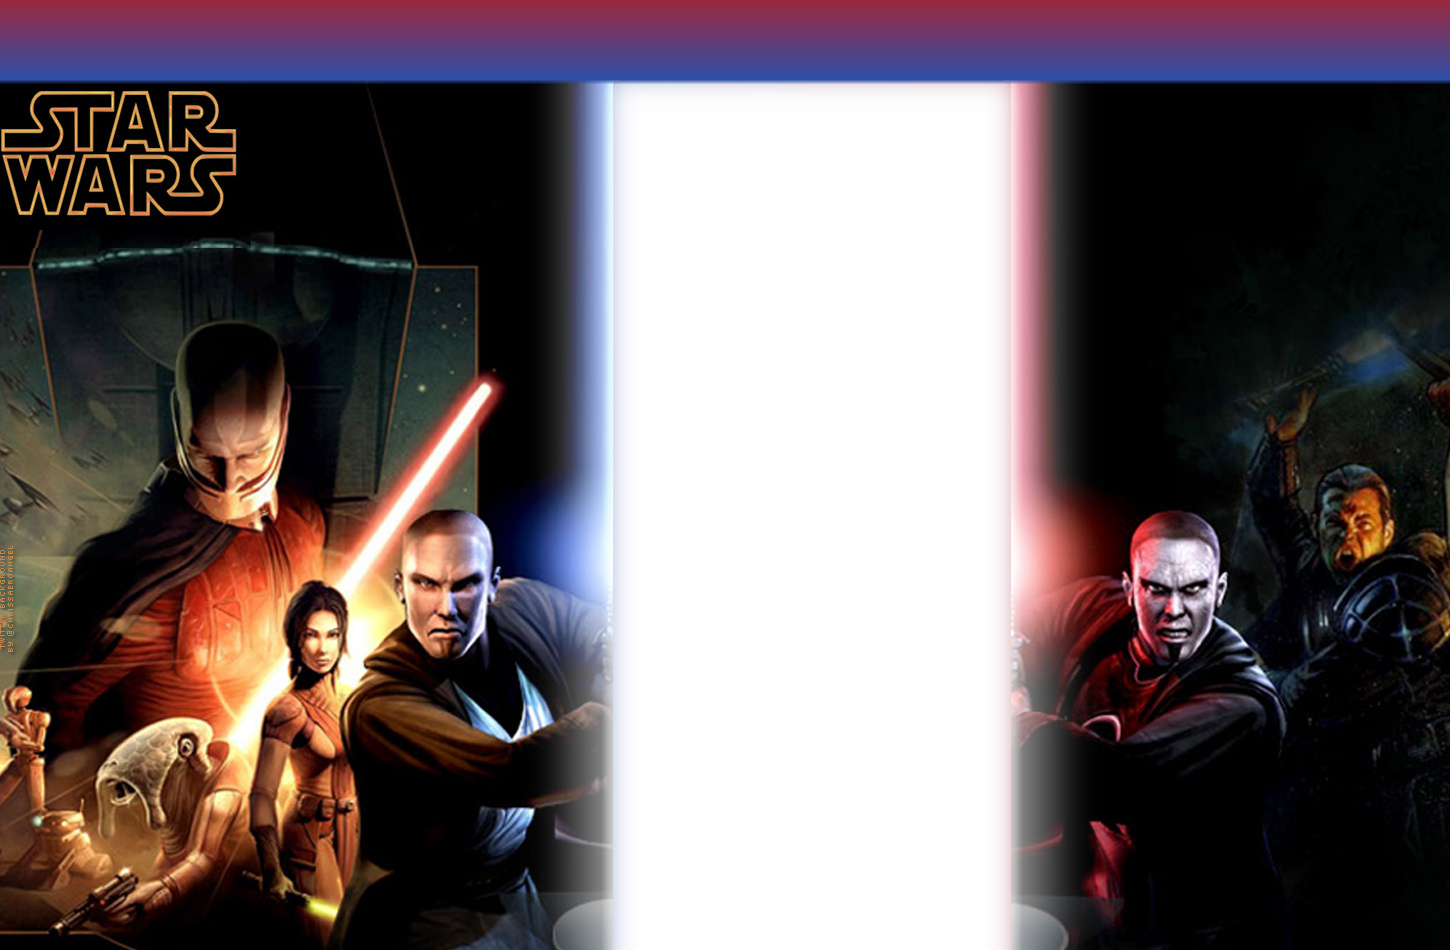 Star Wars Twitter Backgrounds Star Wars Twitter Themes 1450x950